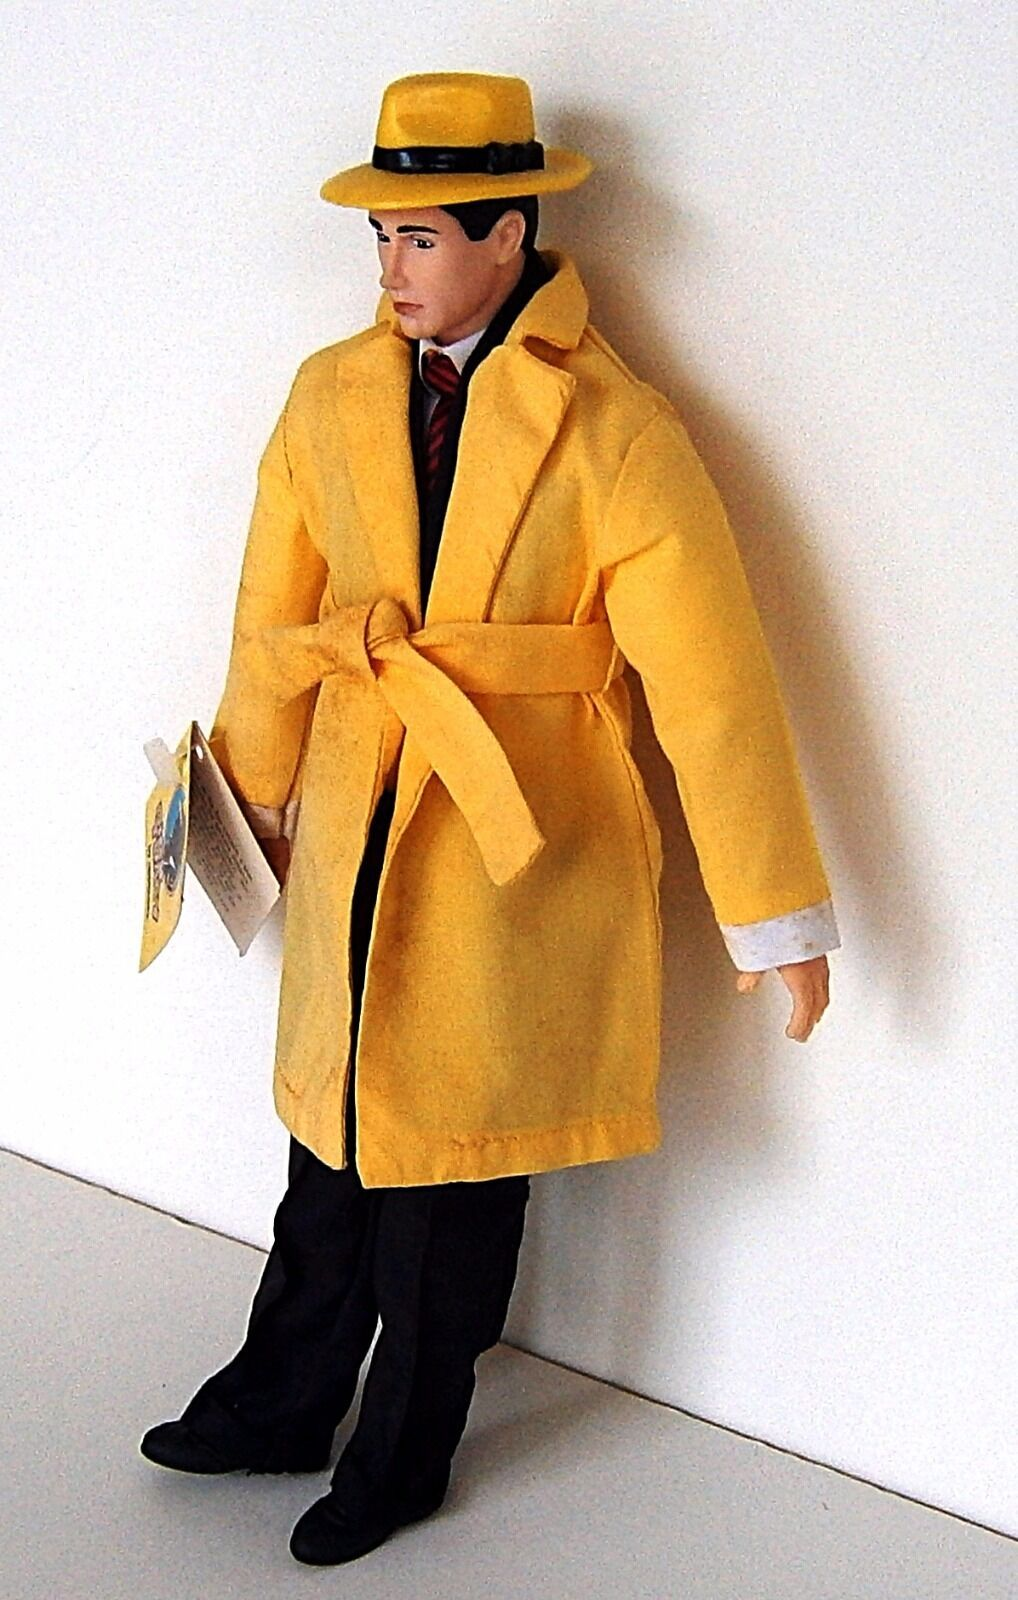 Dick Tracy Doll by Applause image 2